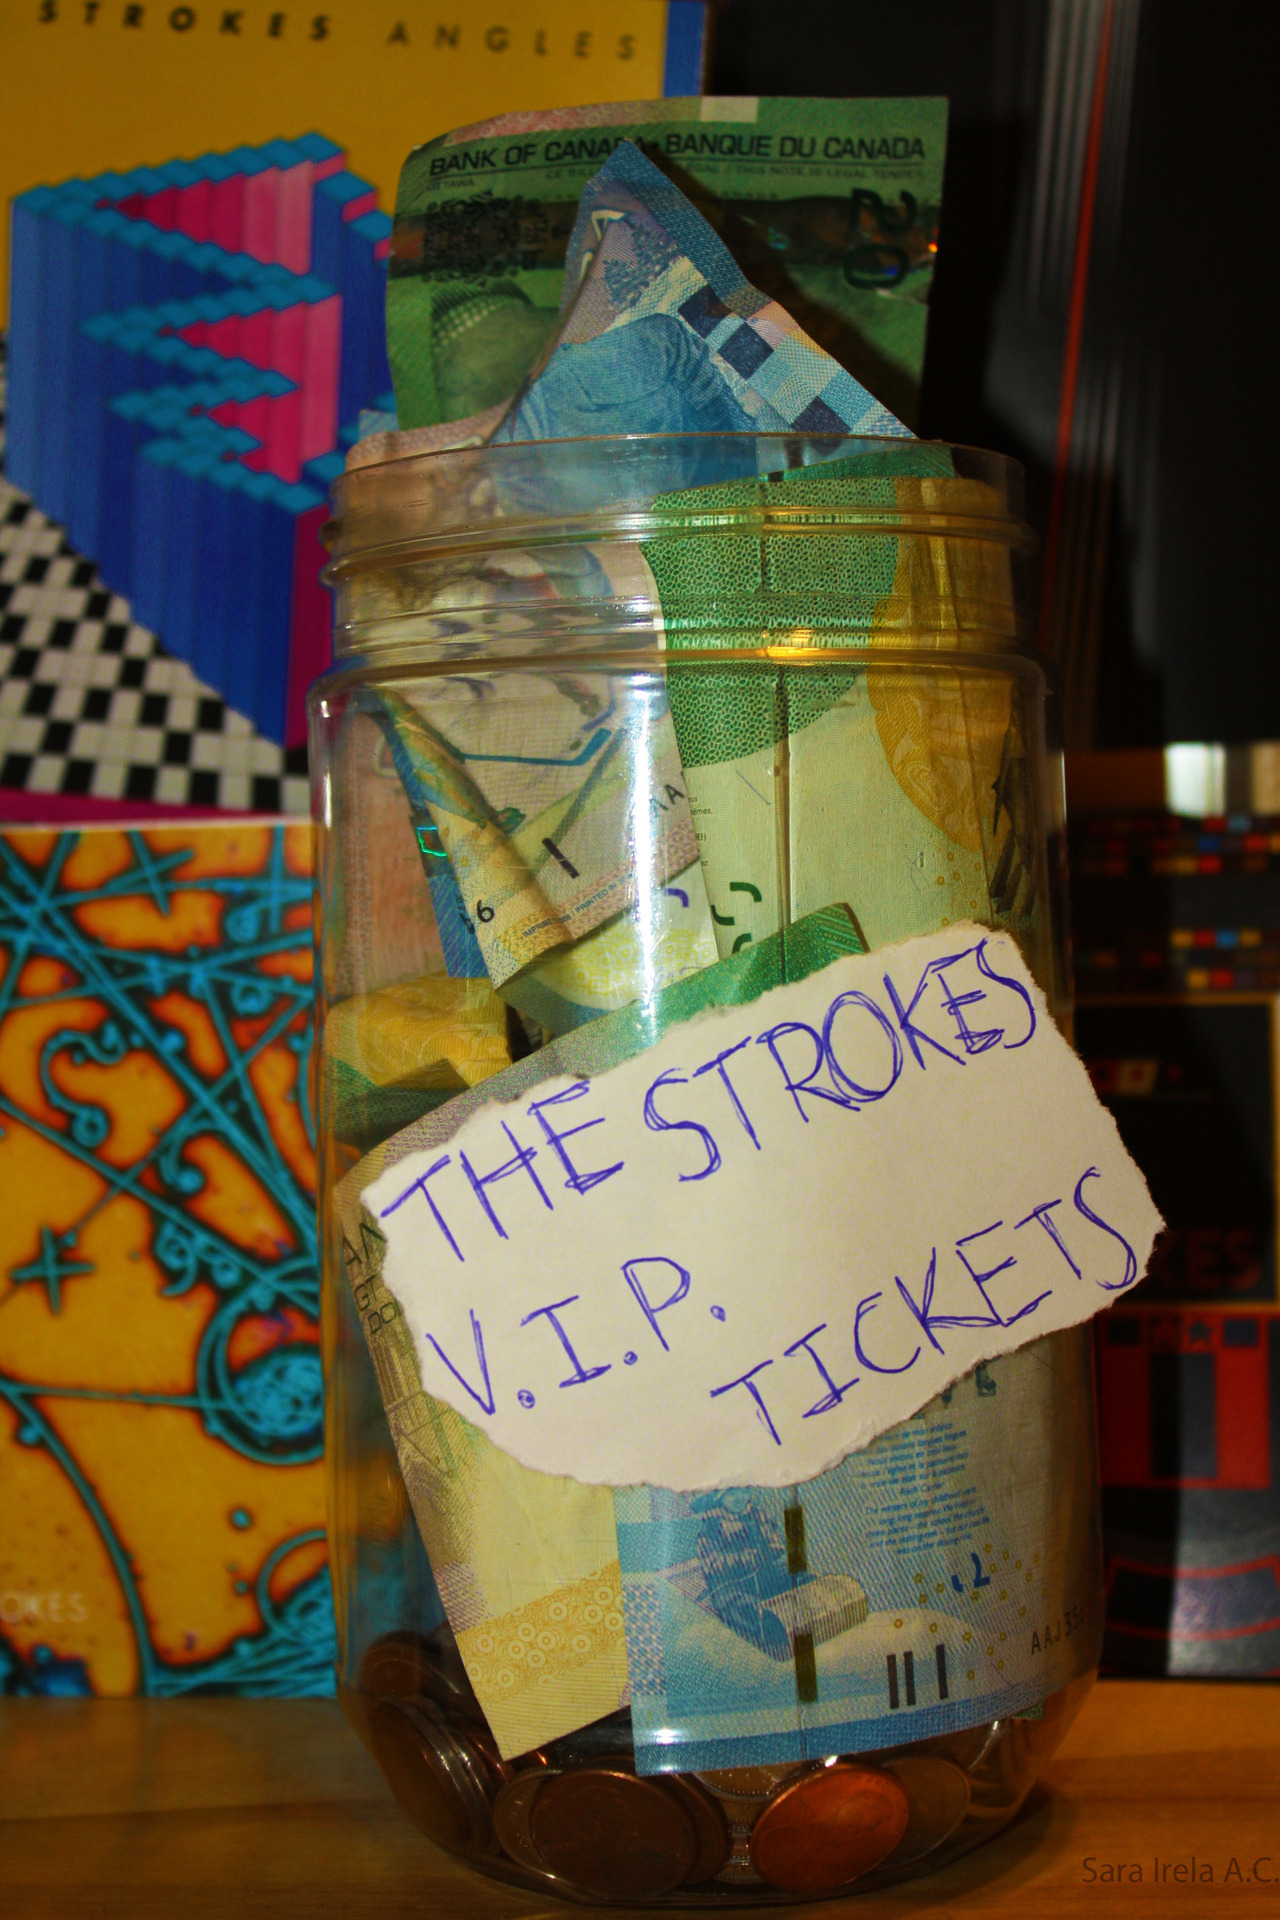 Yes this is actually my savings jar for The Strokes' concert Someday♥